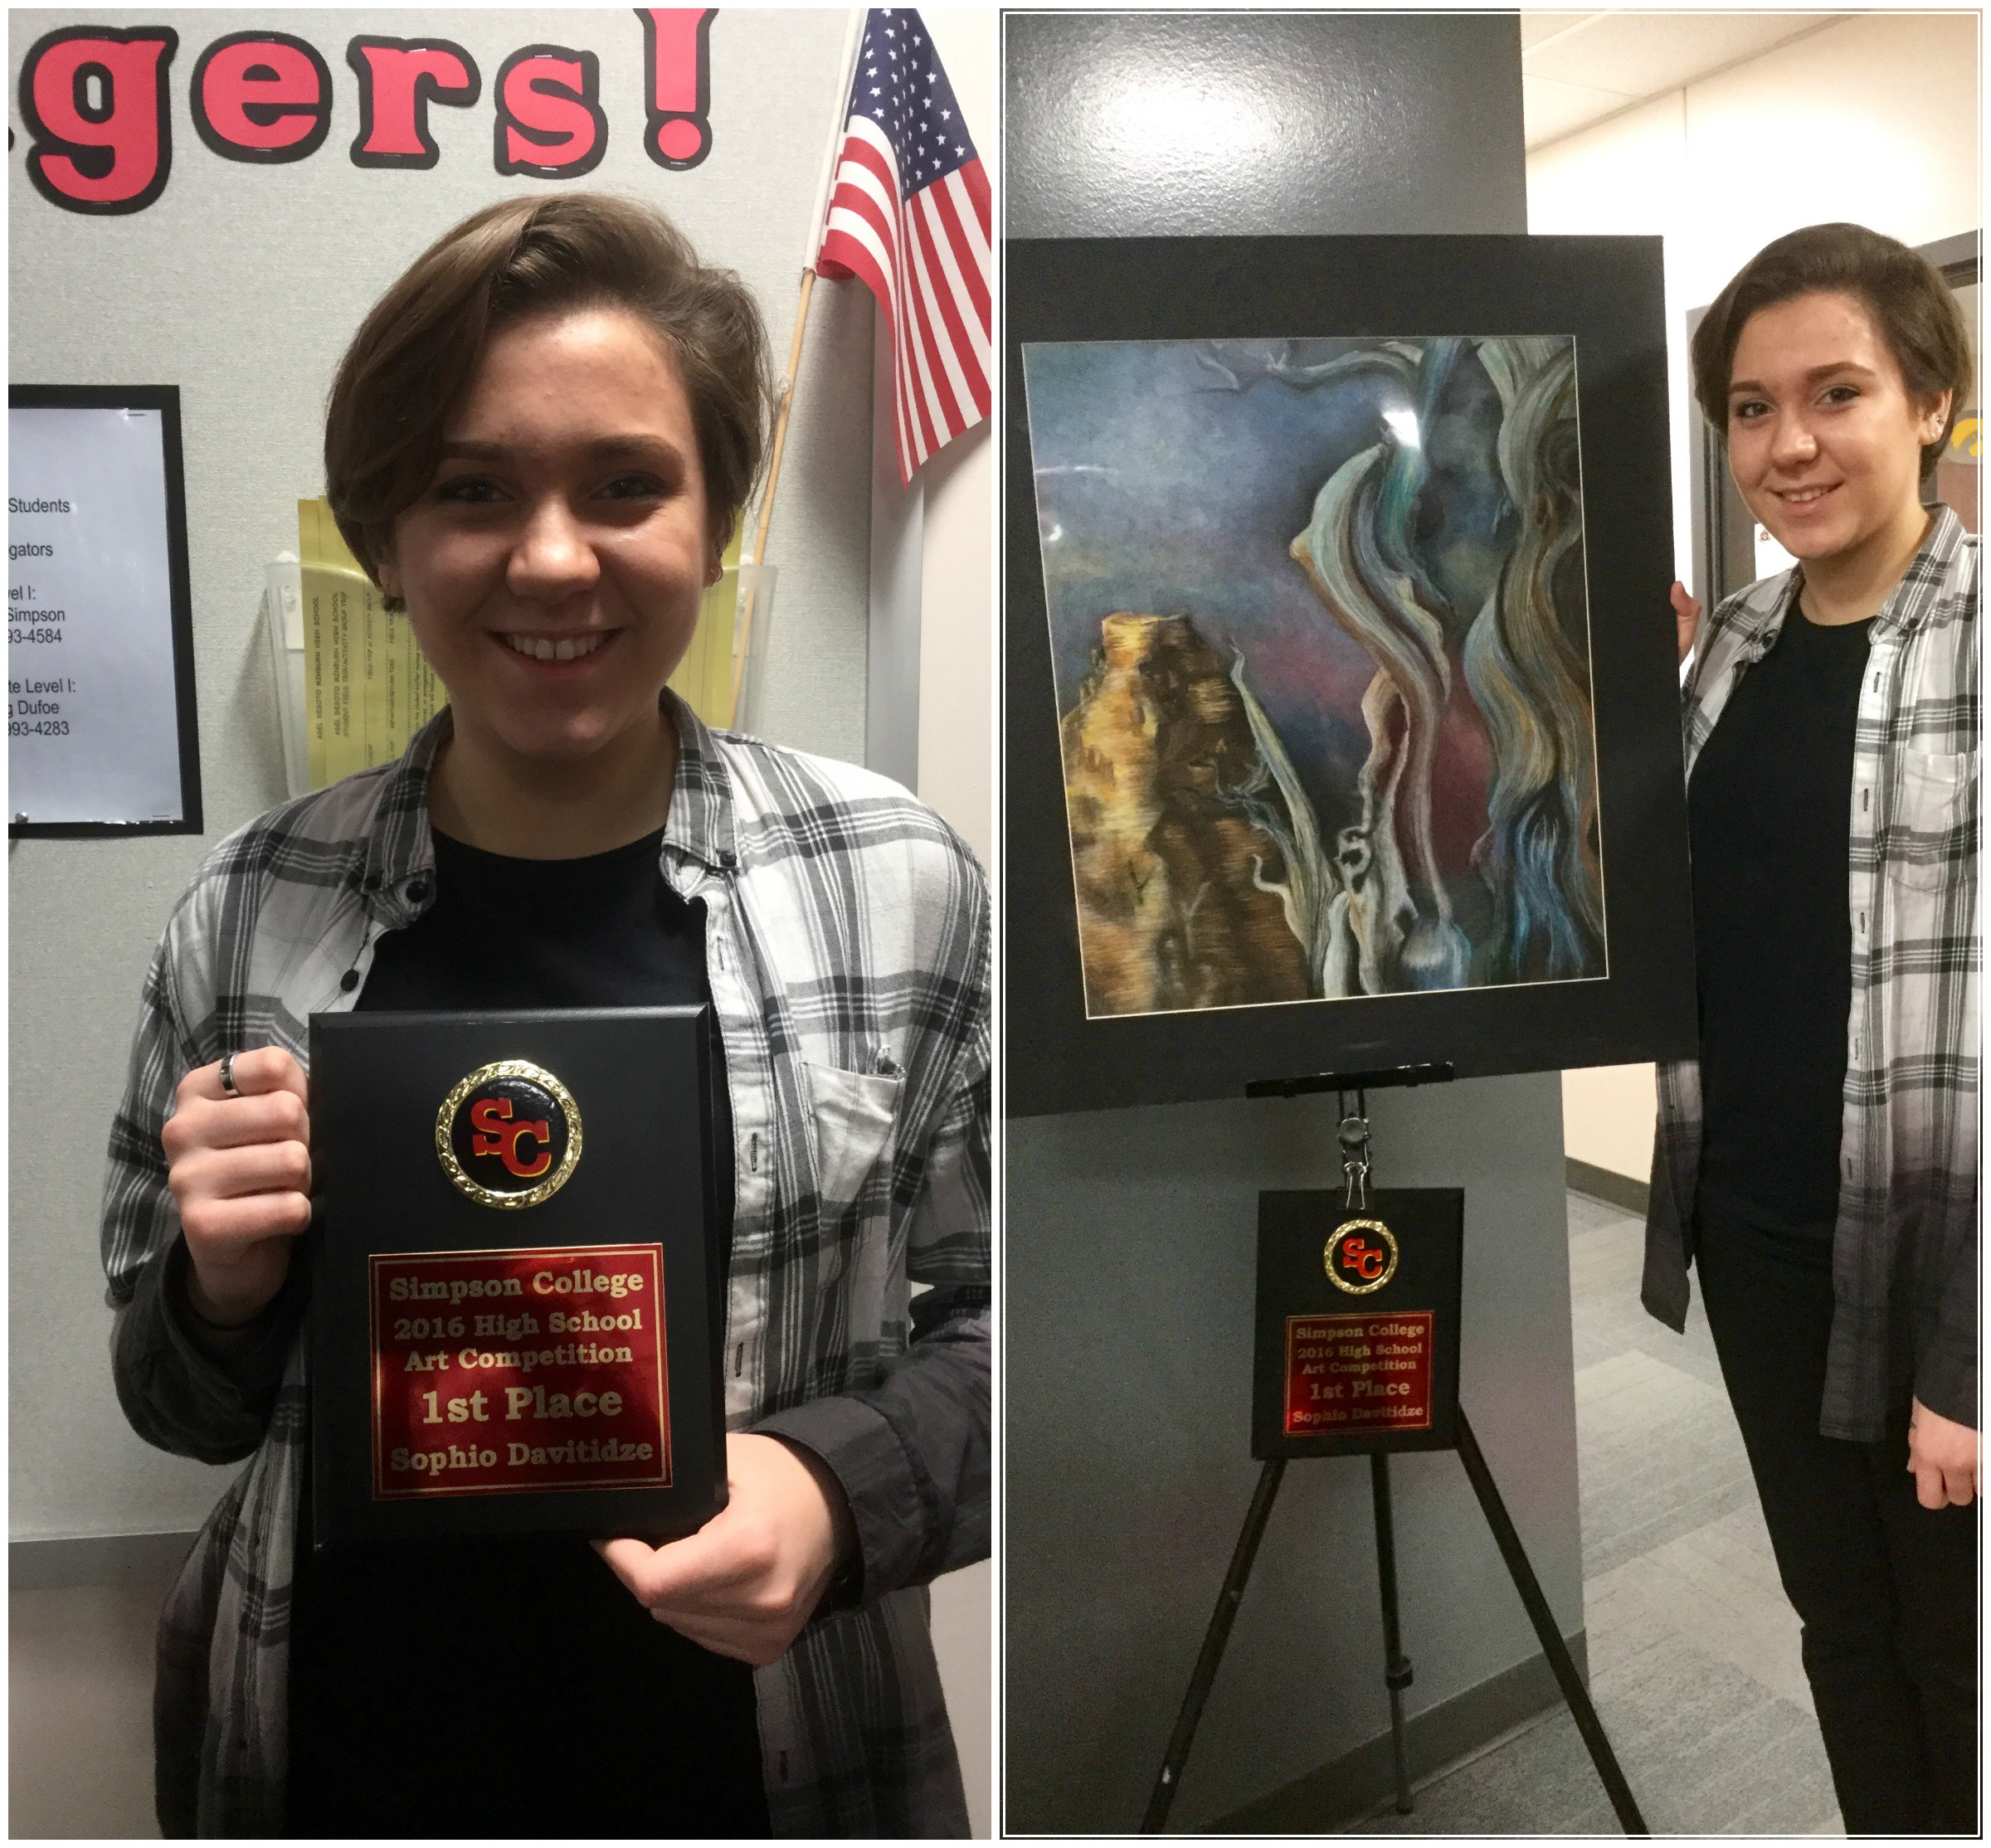 Sophio with her submission and her 1st place plaque for the Simpson College 2016 High School Art Competition.